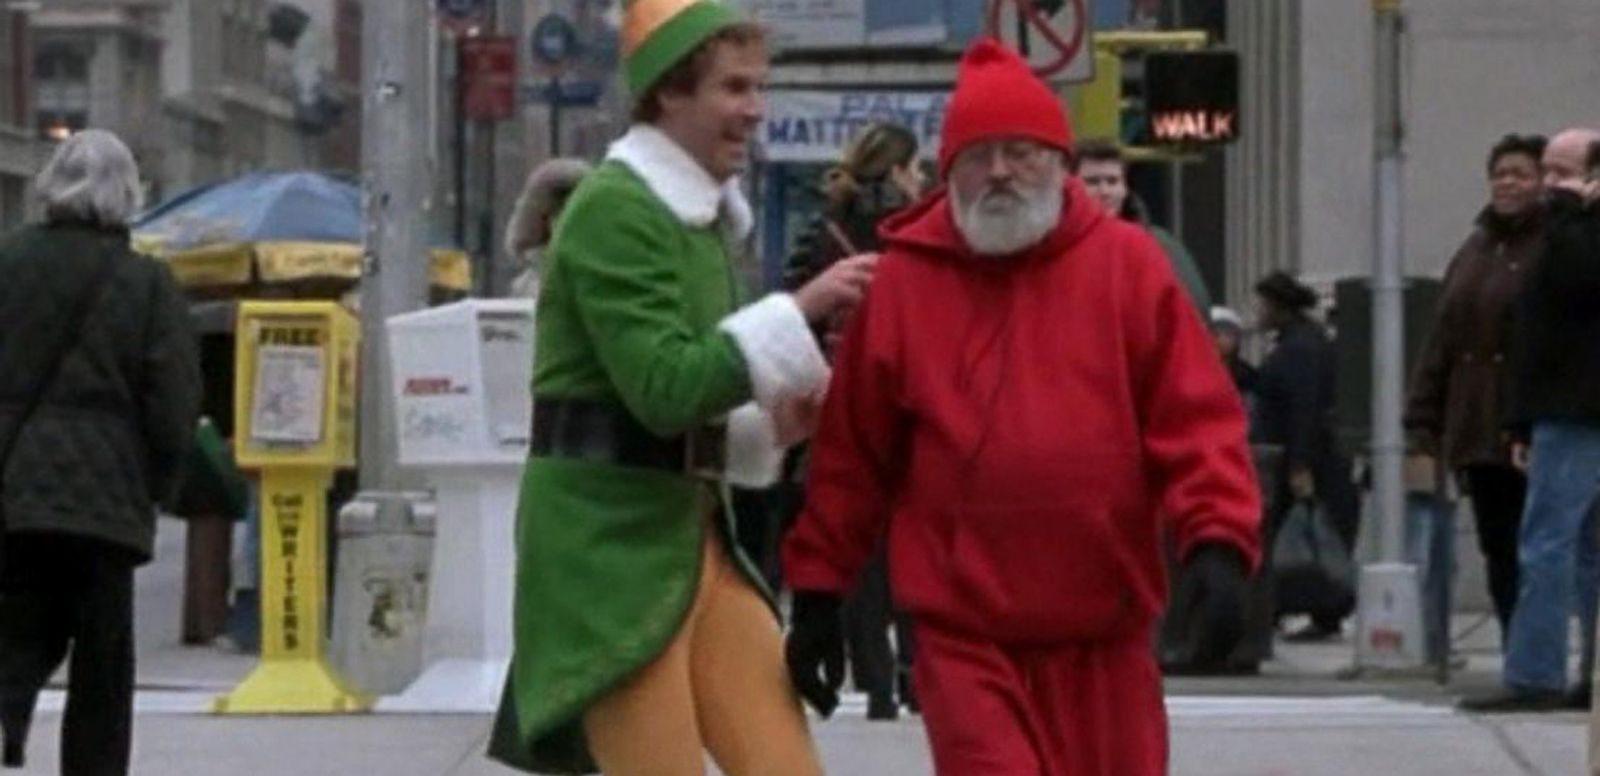 VIDEO: The Best Christmas Movie Moments of All Time